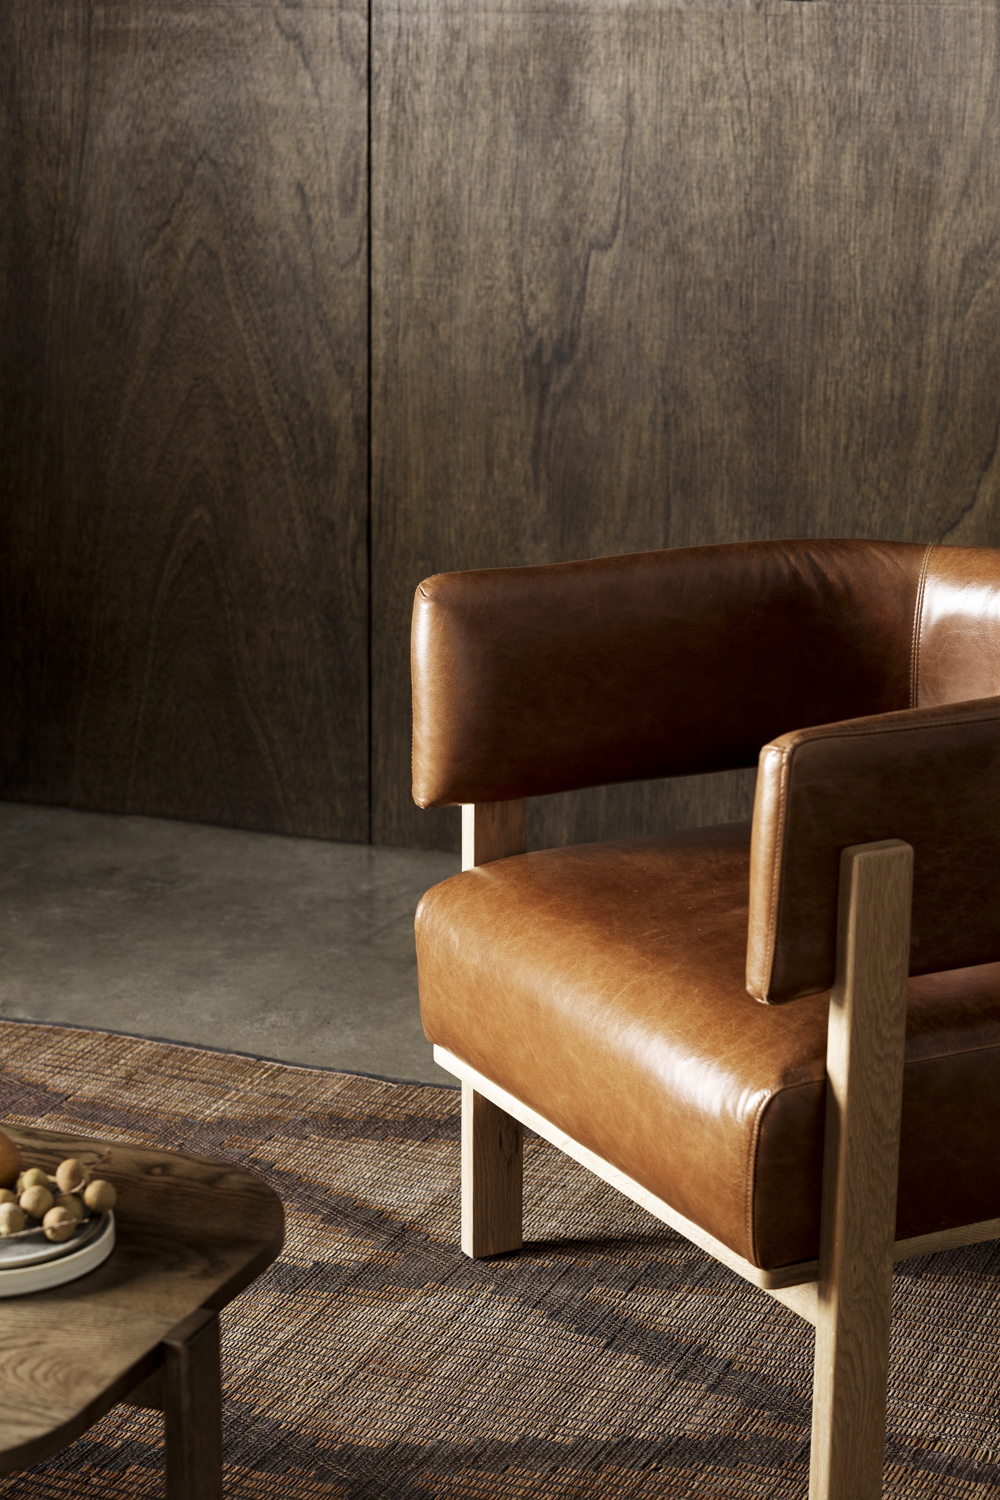 Flo armchair in Antico leather.